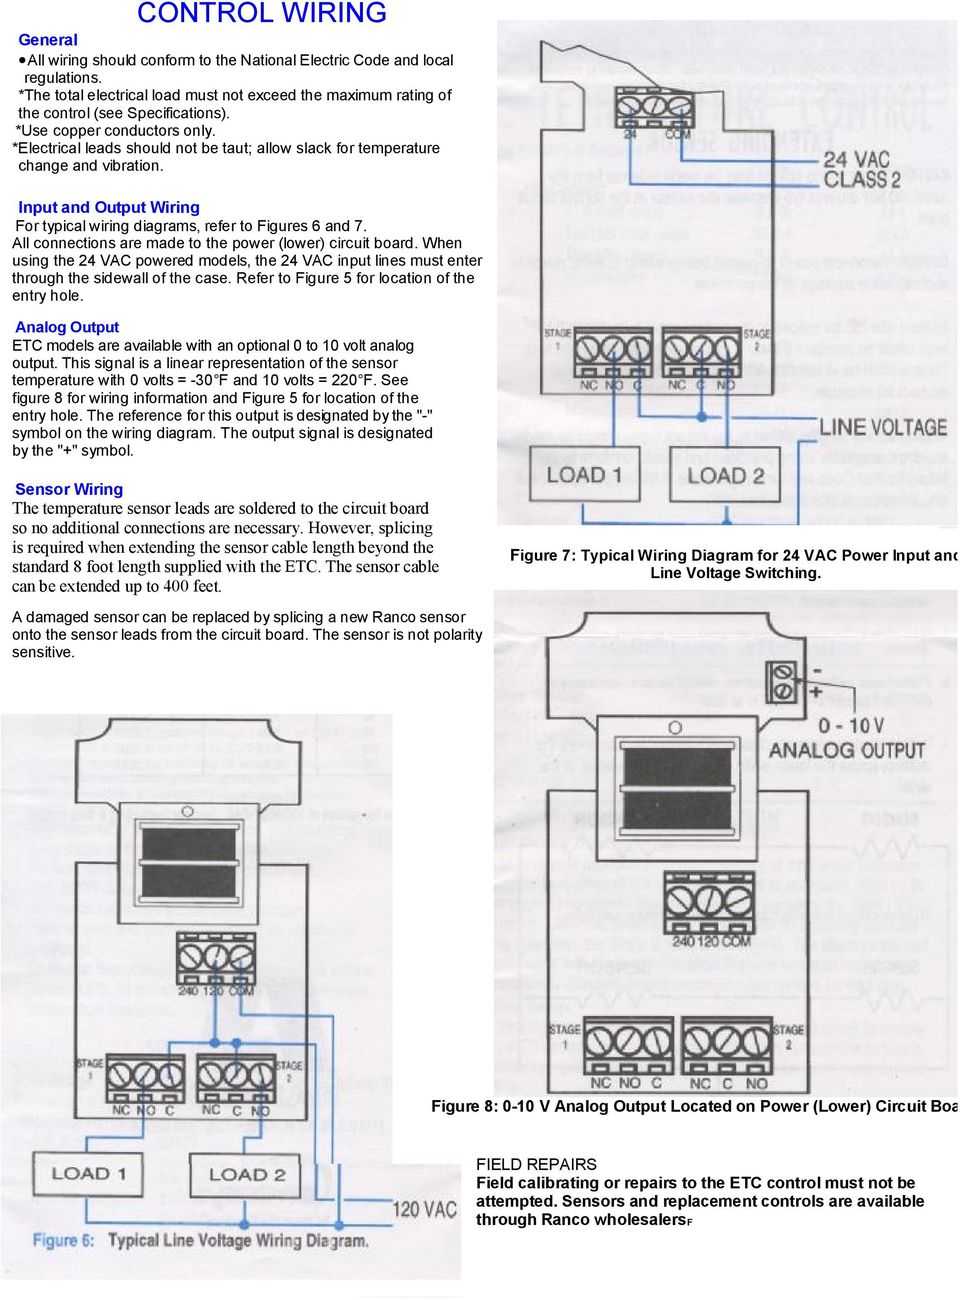 medium resolution of all connections are made to the power lower circuit board when using the